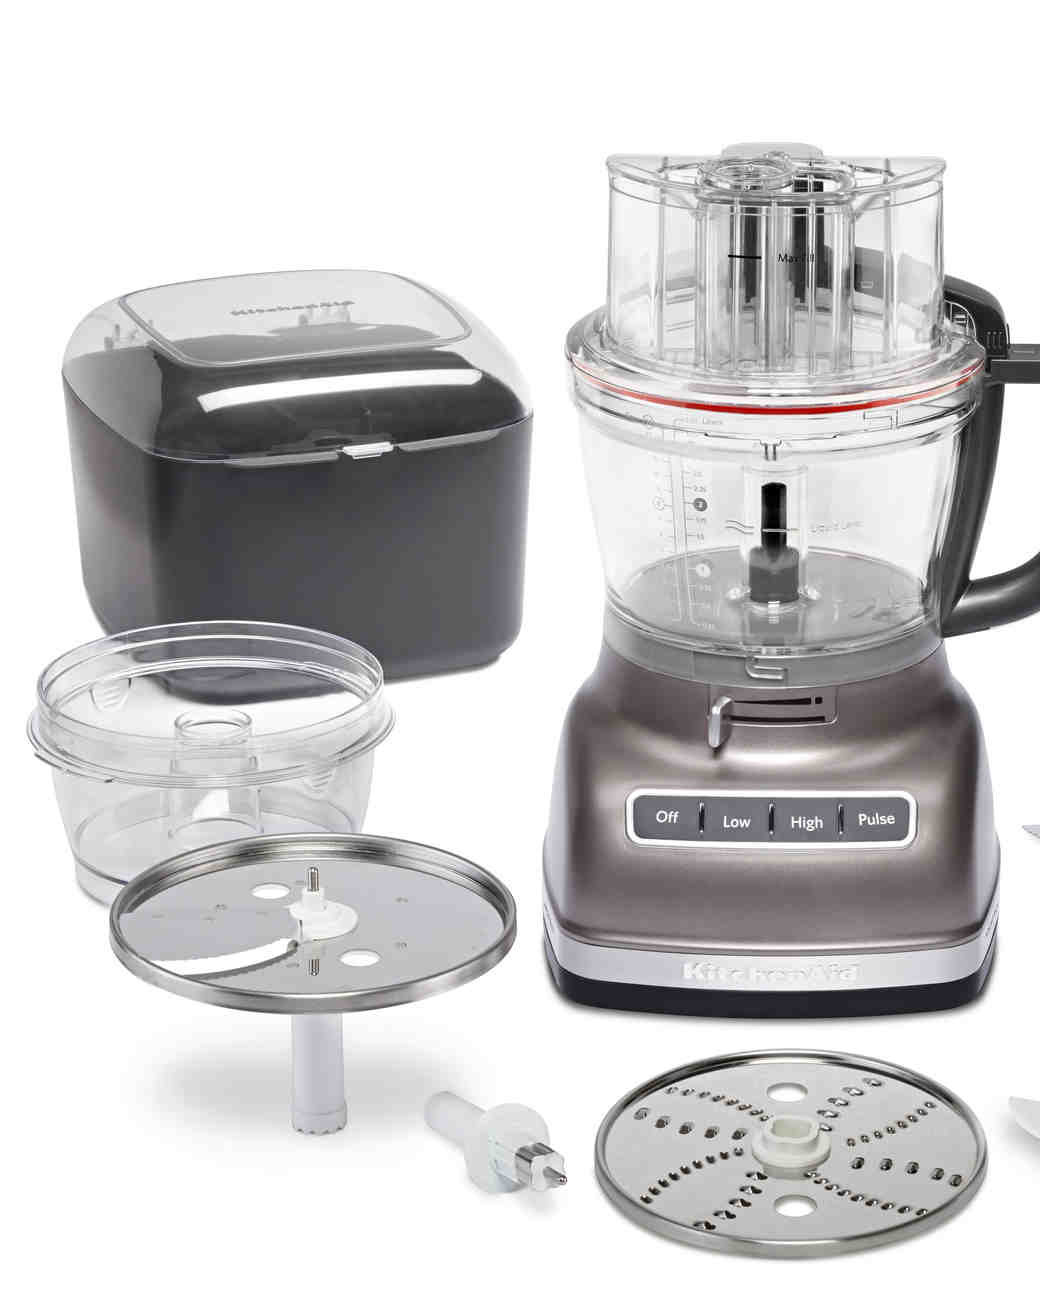 macys-registry-1-kitchenaid-architect-food-processorp140236-06-0115.jpg